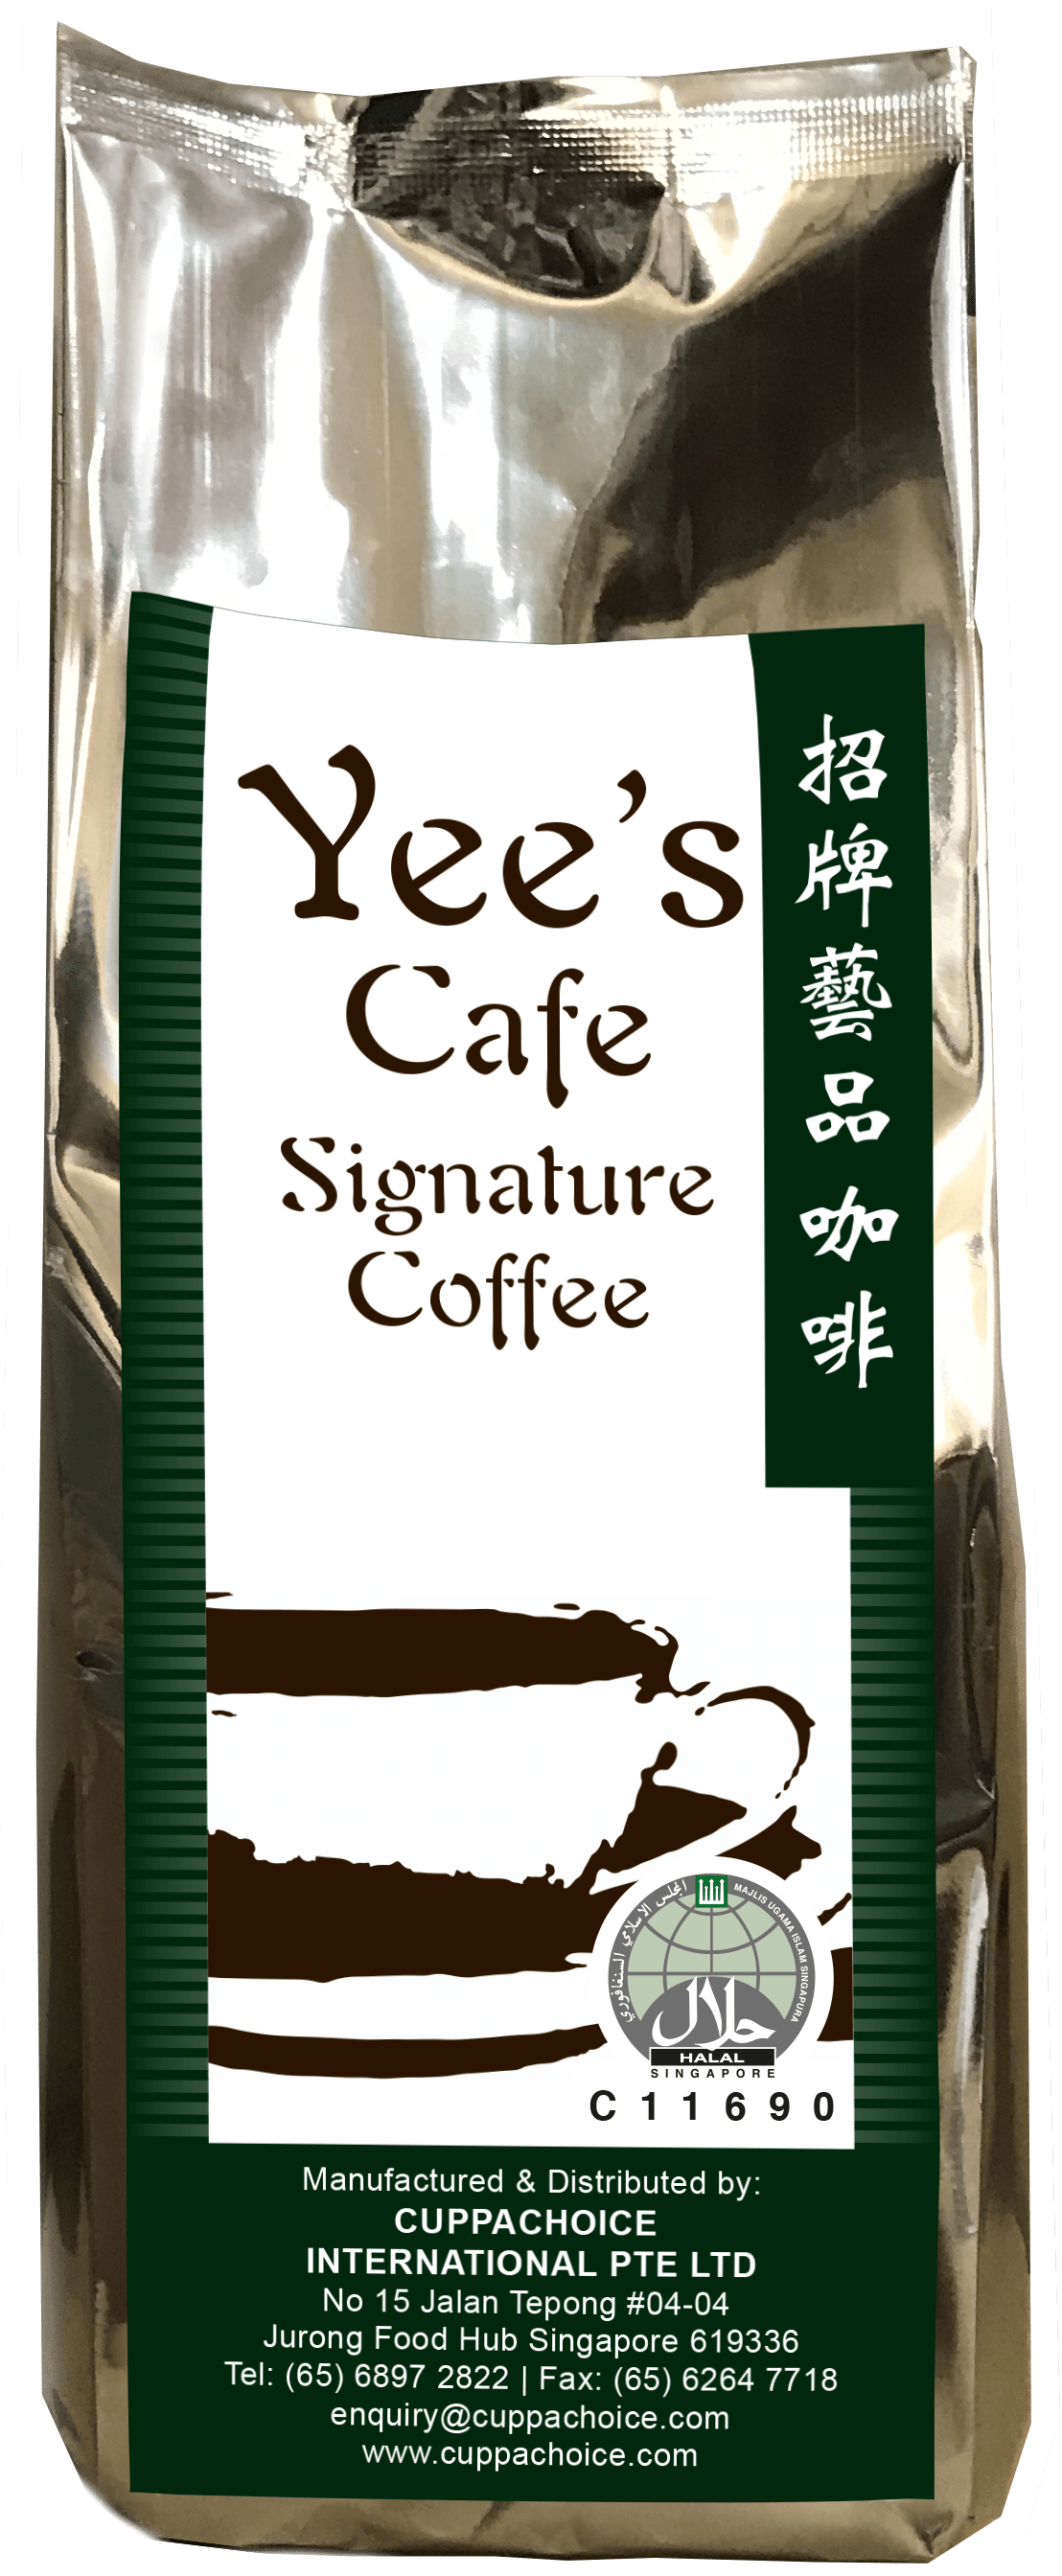 Yee's Cafe Signature Coffee